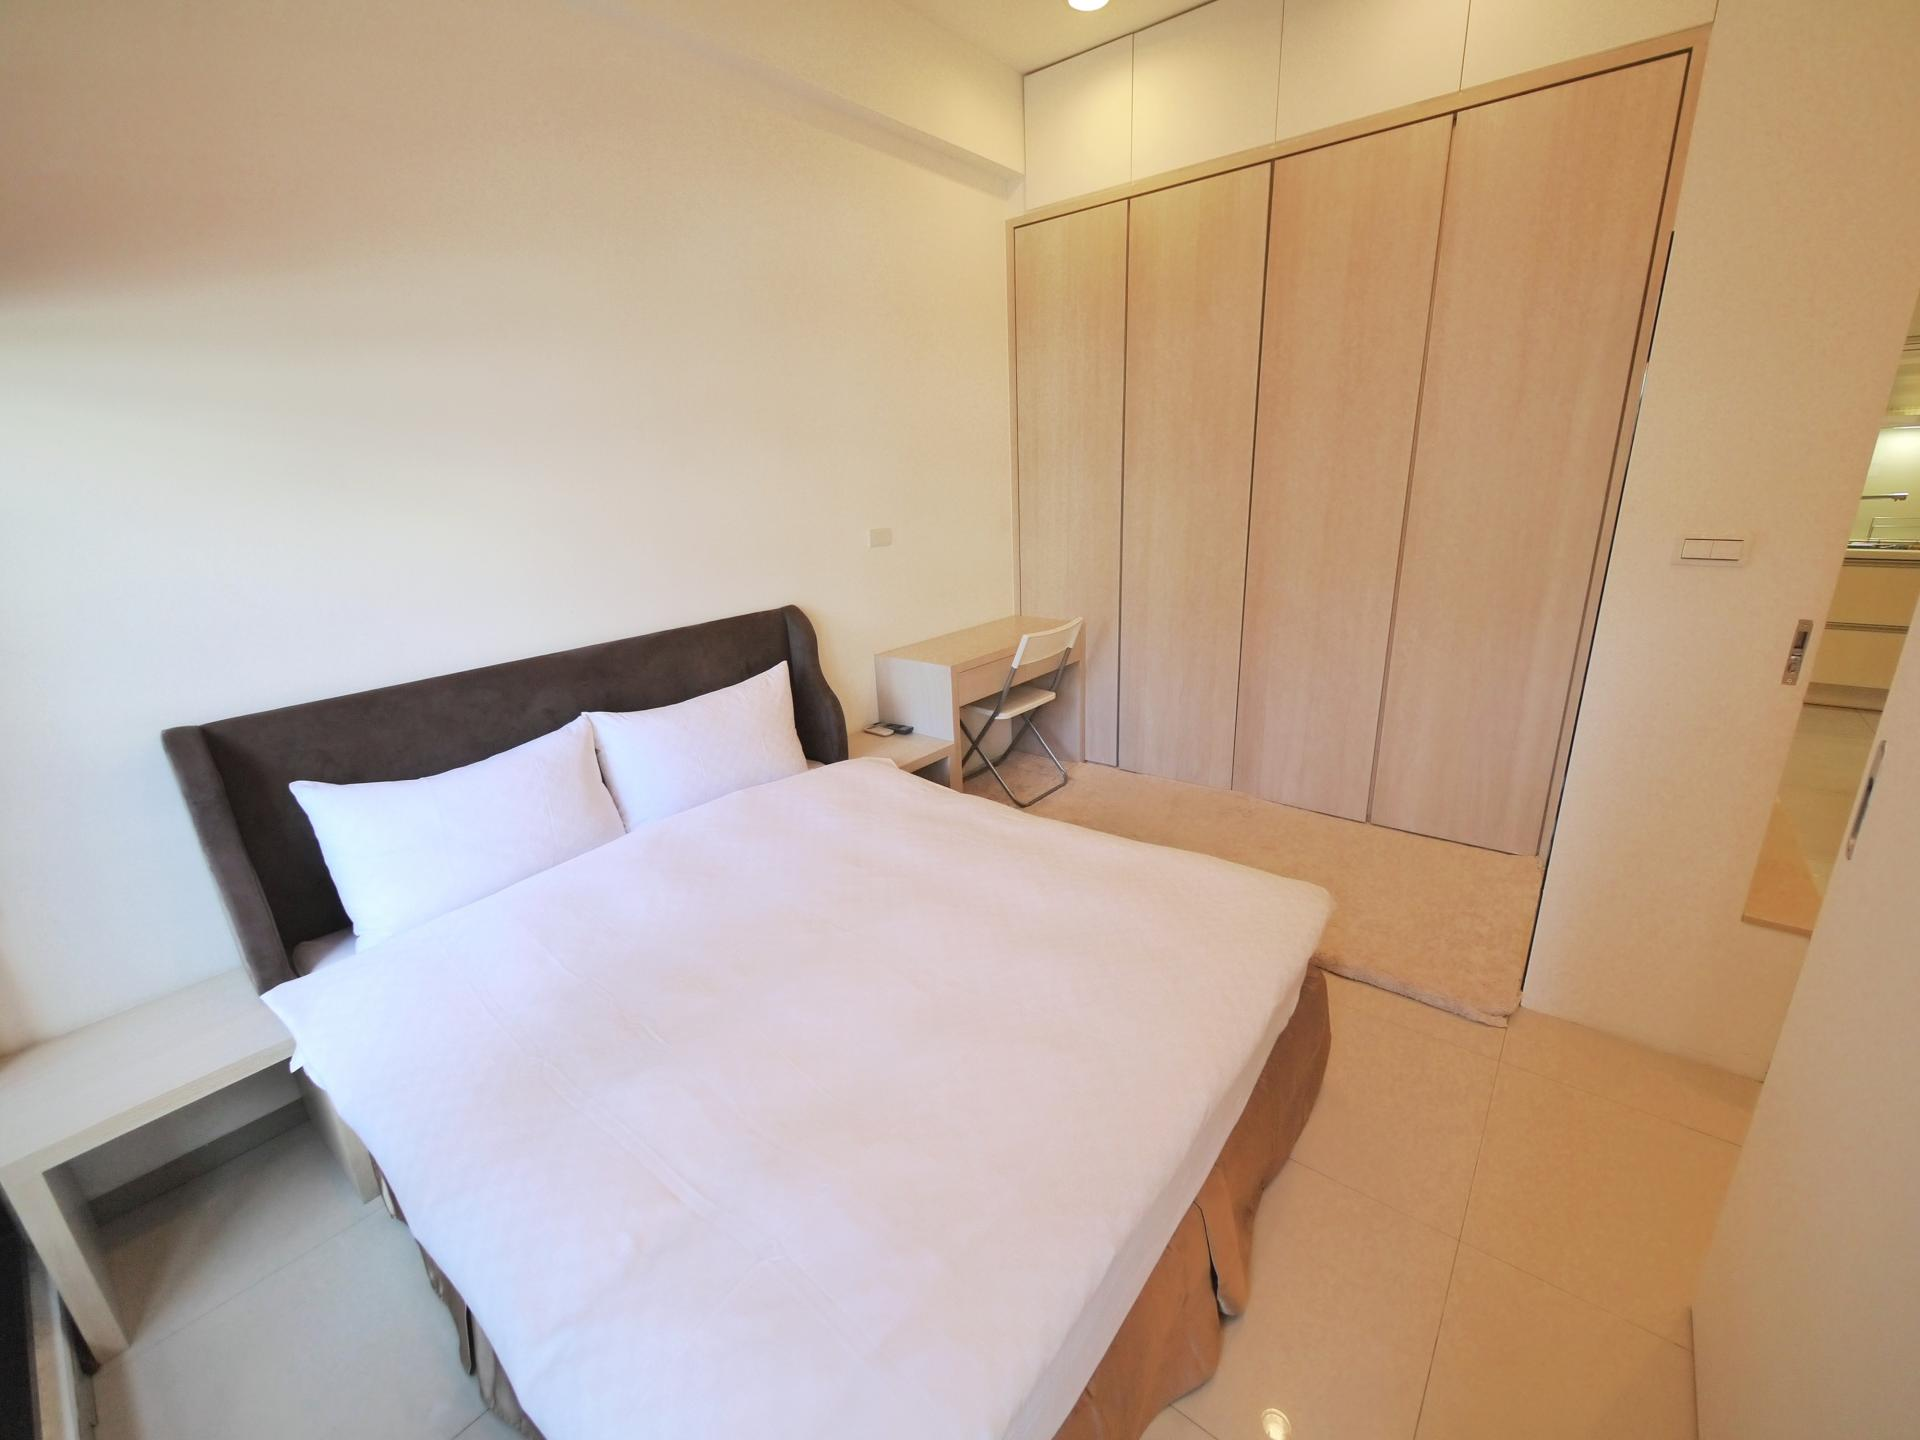 Double bed at CK Serviced Apartments